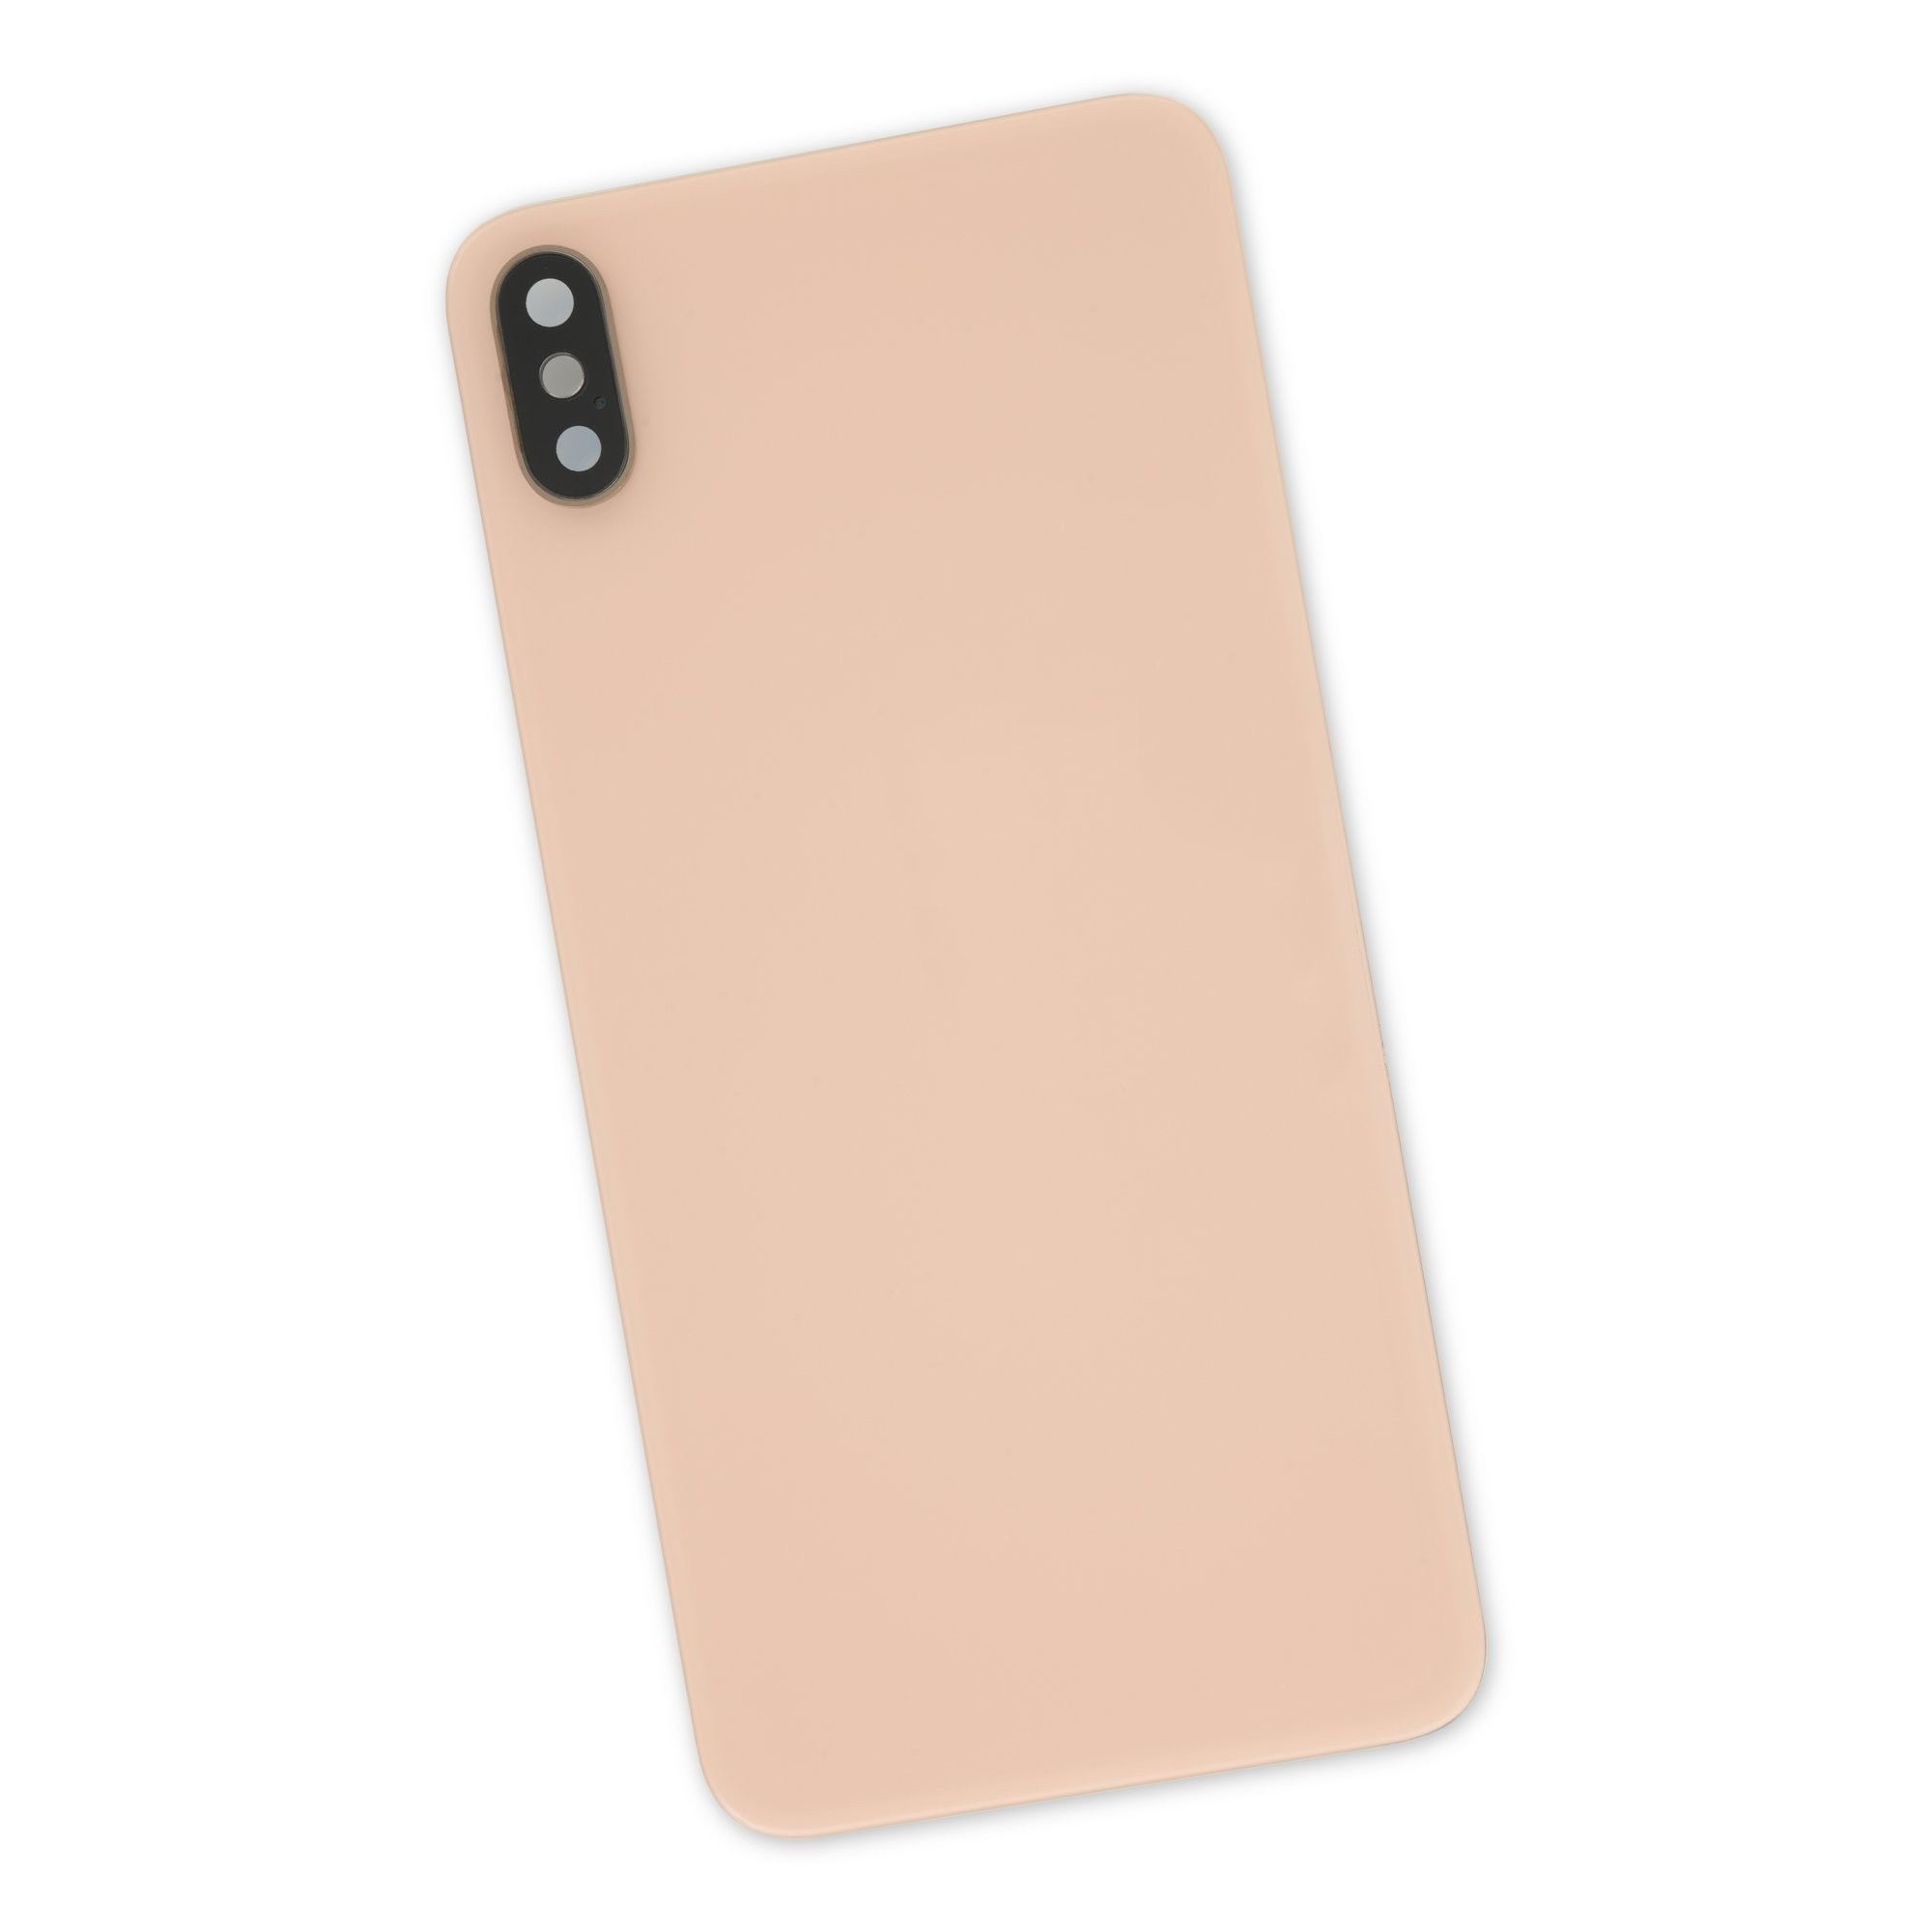 iPhone XS Max Aftermarket Blank Rear Glass Panel with Lens Cover - Gold, IF407-017-3